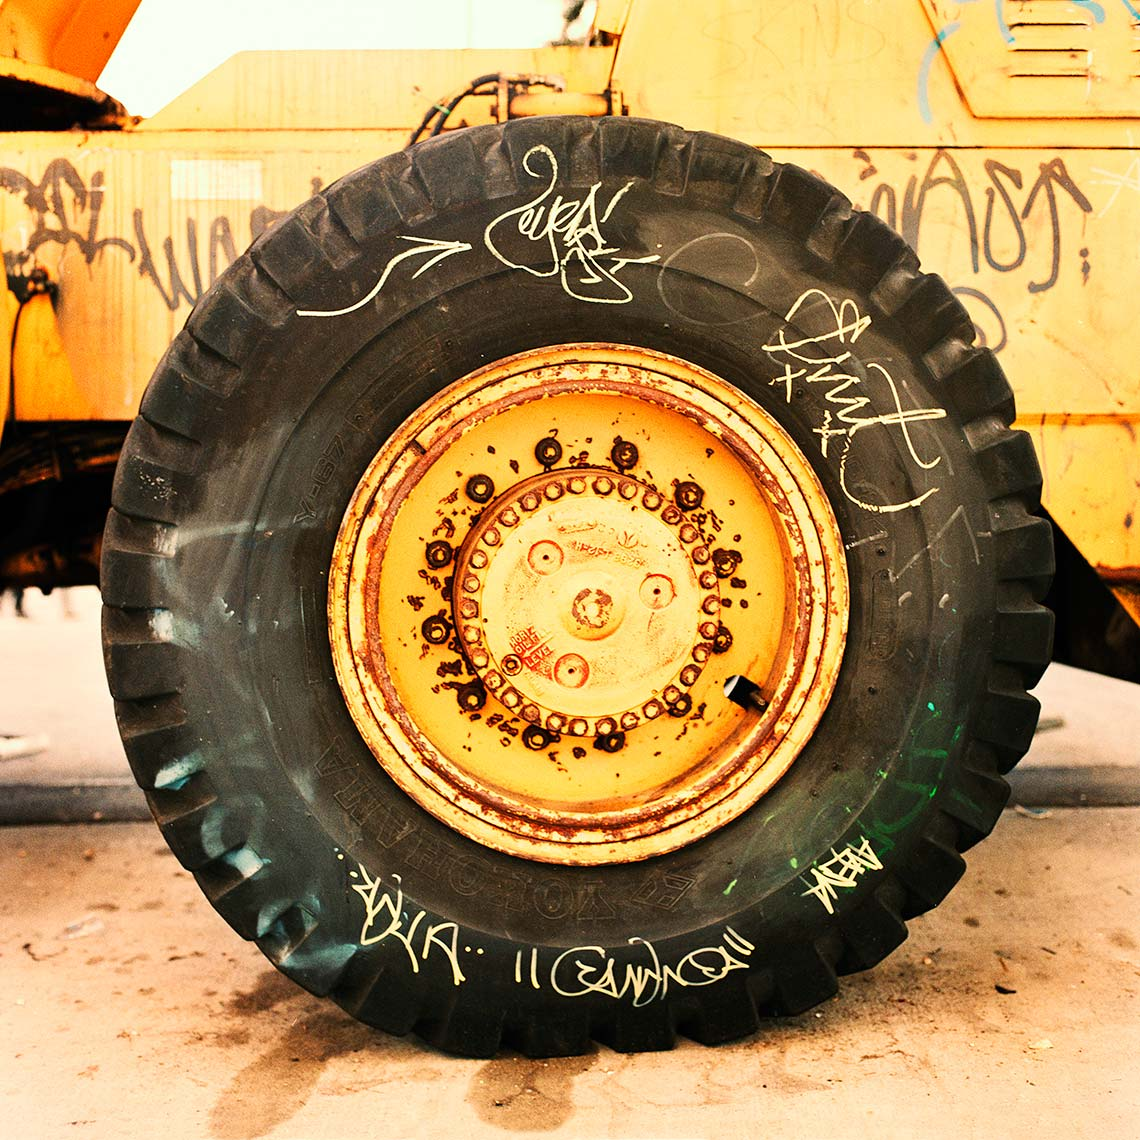 What I Seen - Graffiti Tractor